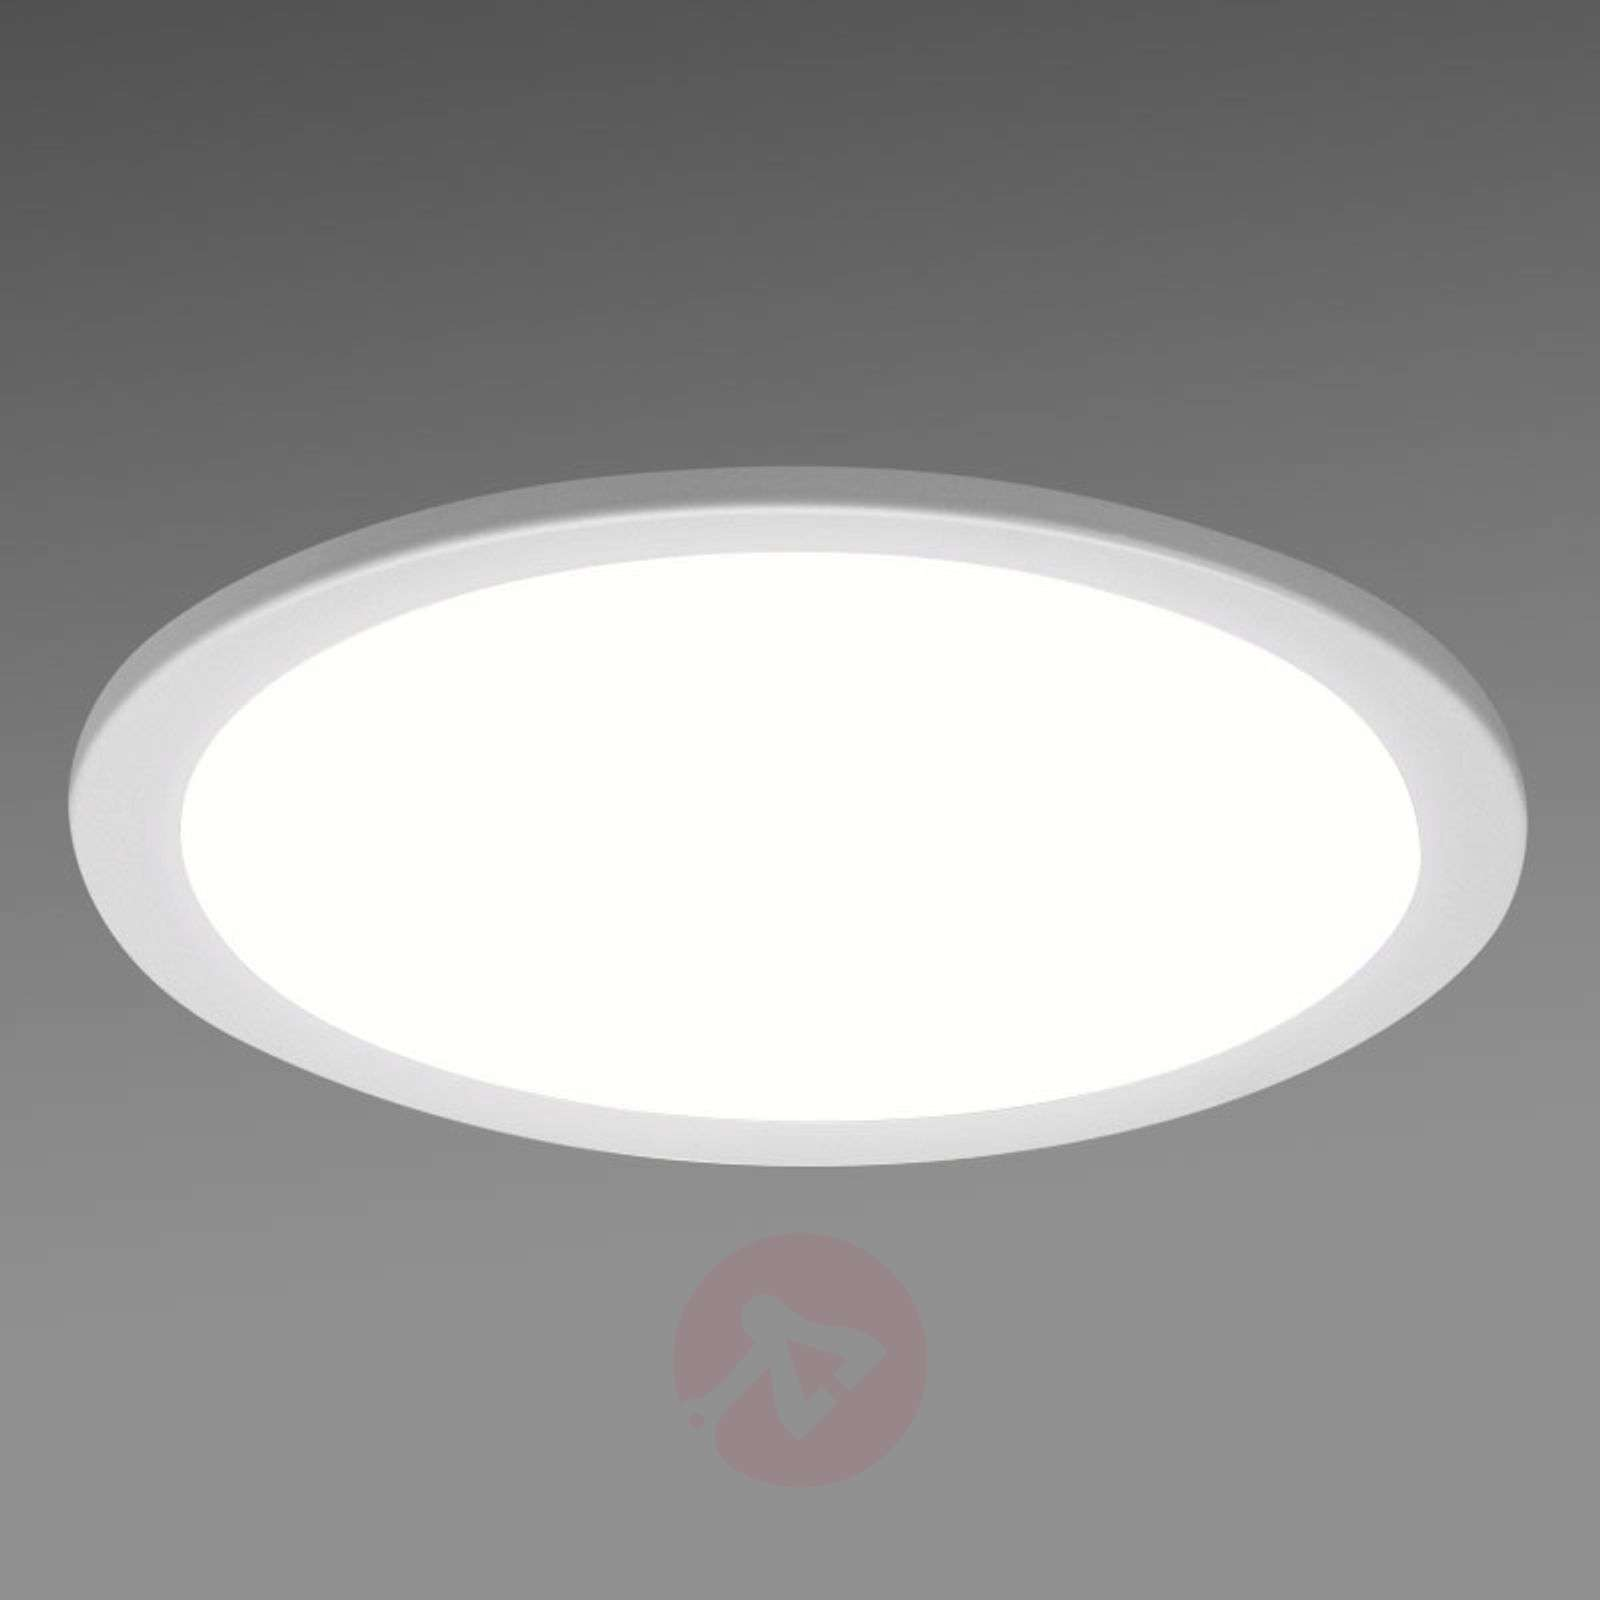 downlight encastrable led sblg rond en blanc. Black Bedroom Furniture Sets. Home Design Ideas